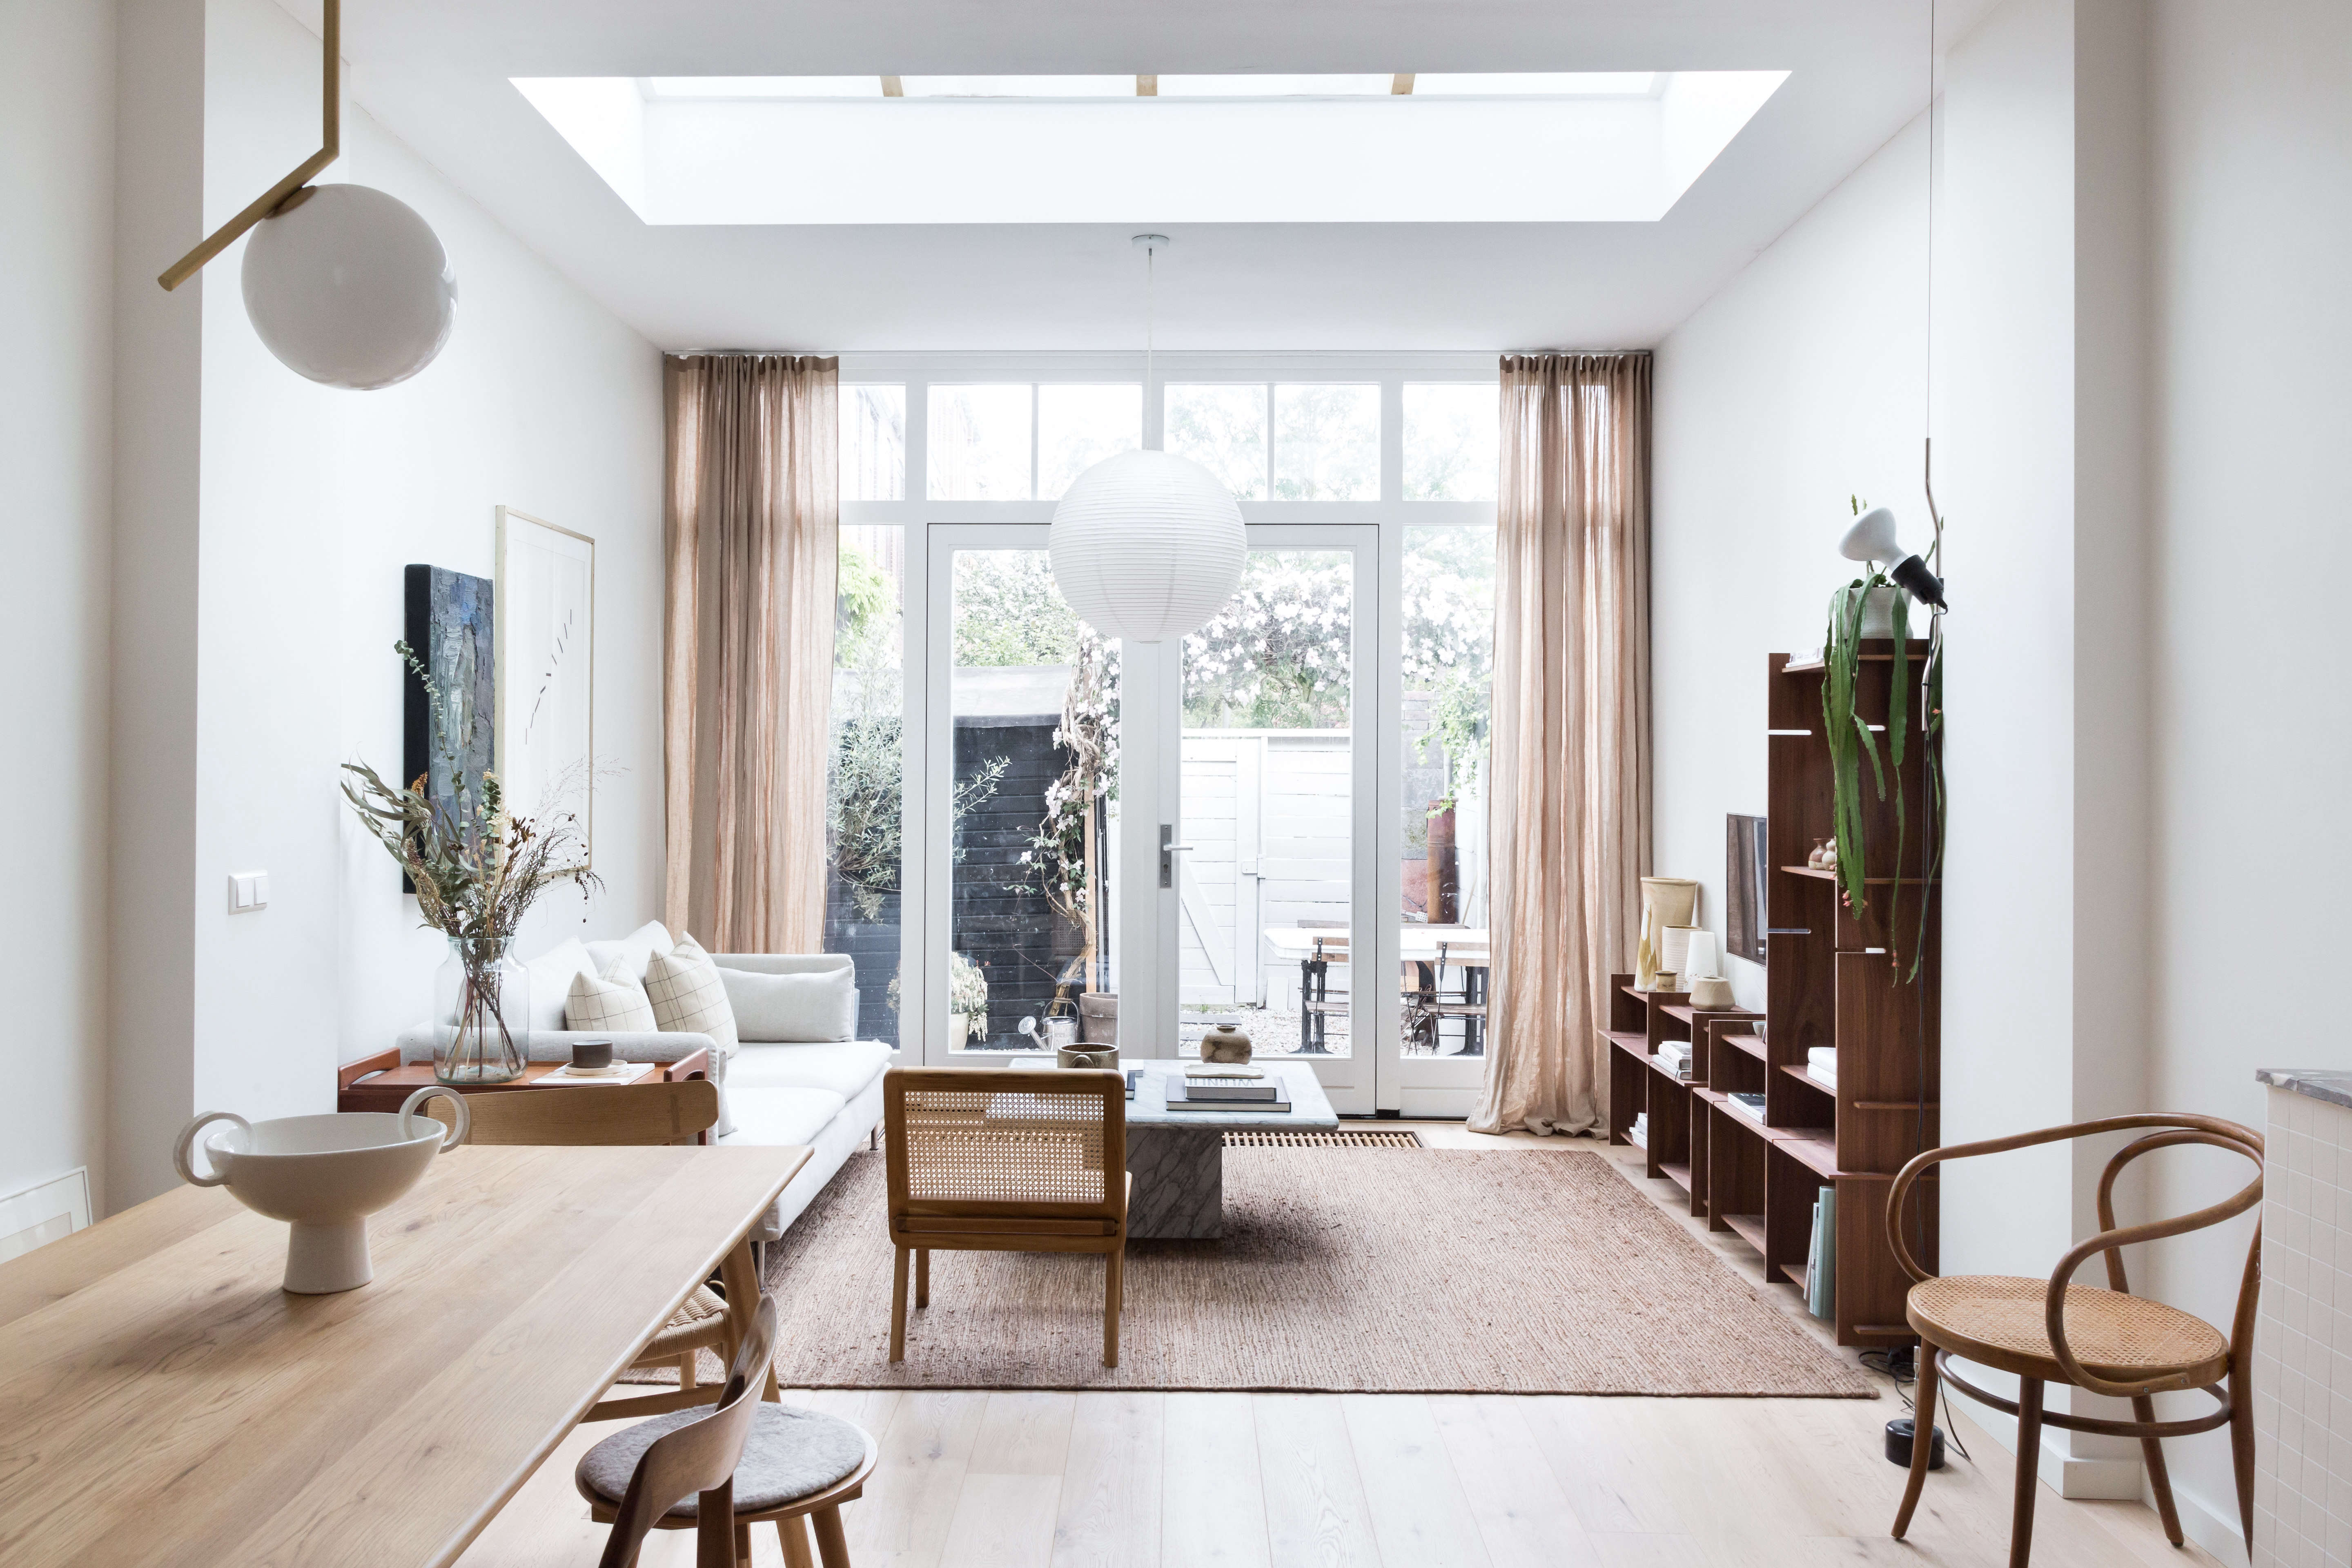 Steal This Look: An Interior Designer's High/Low Scandi Living Room, Ikea Sofa included - Remodelista